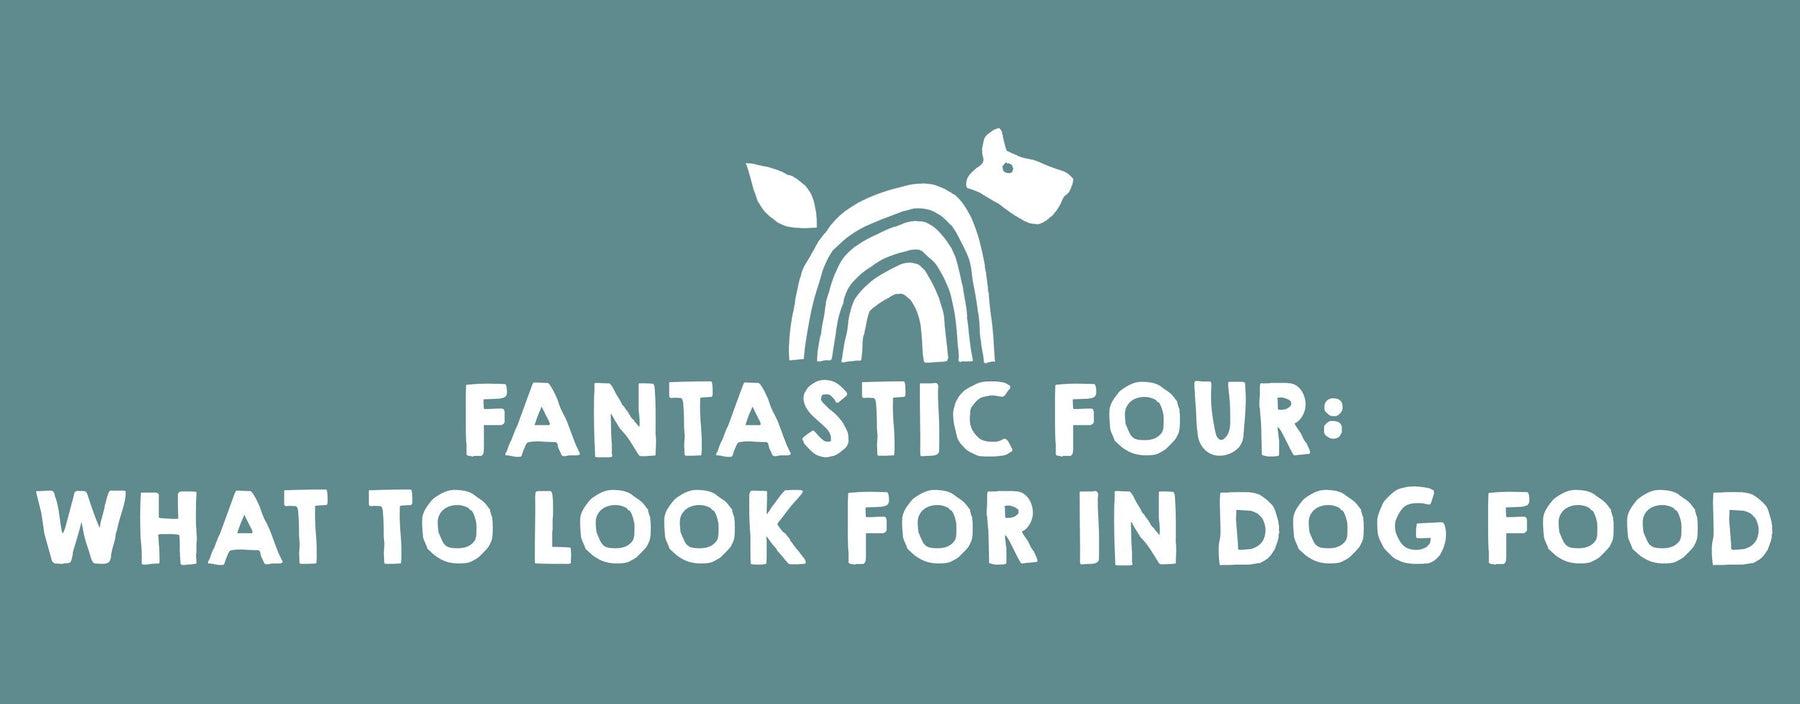 Fantastic Four: What To Look For In Your Dog Food